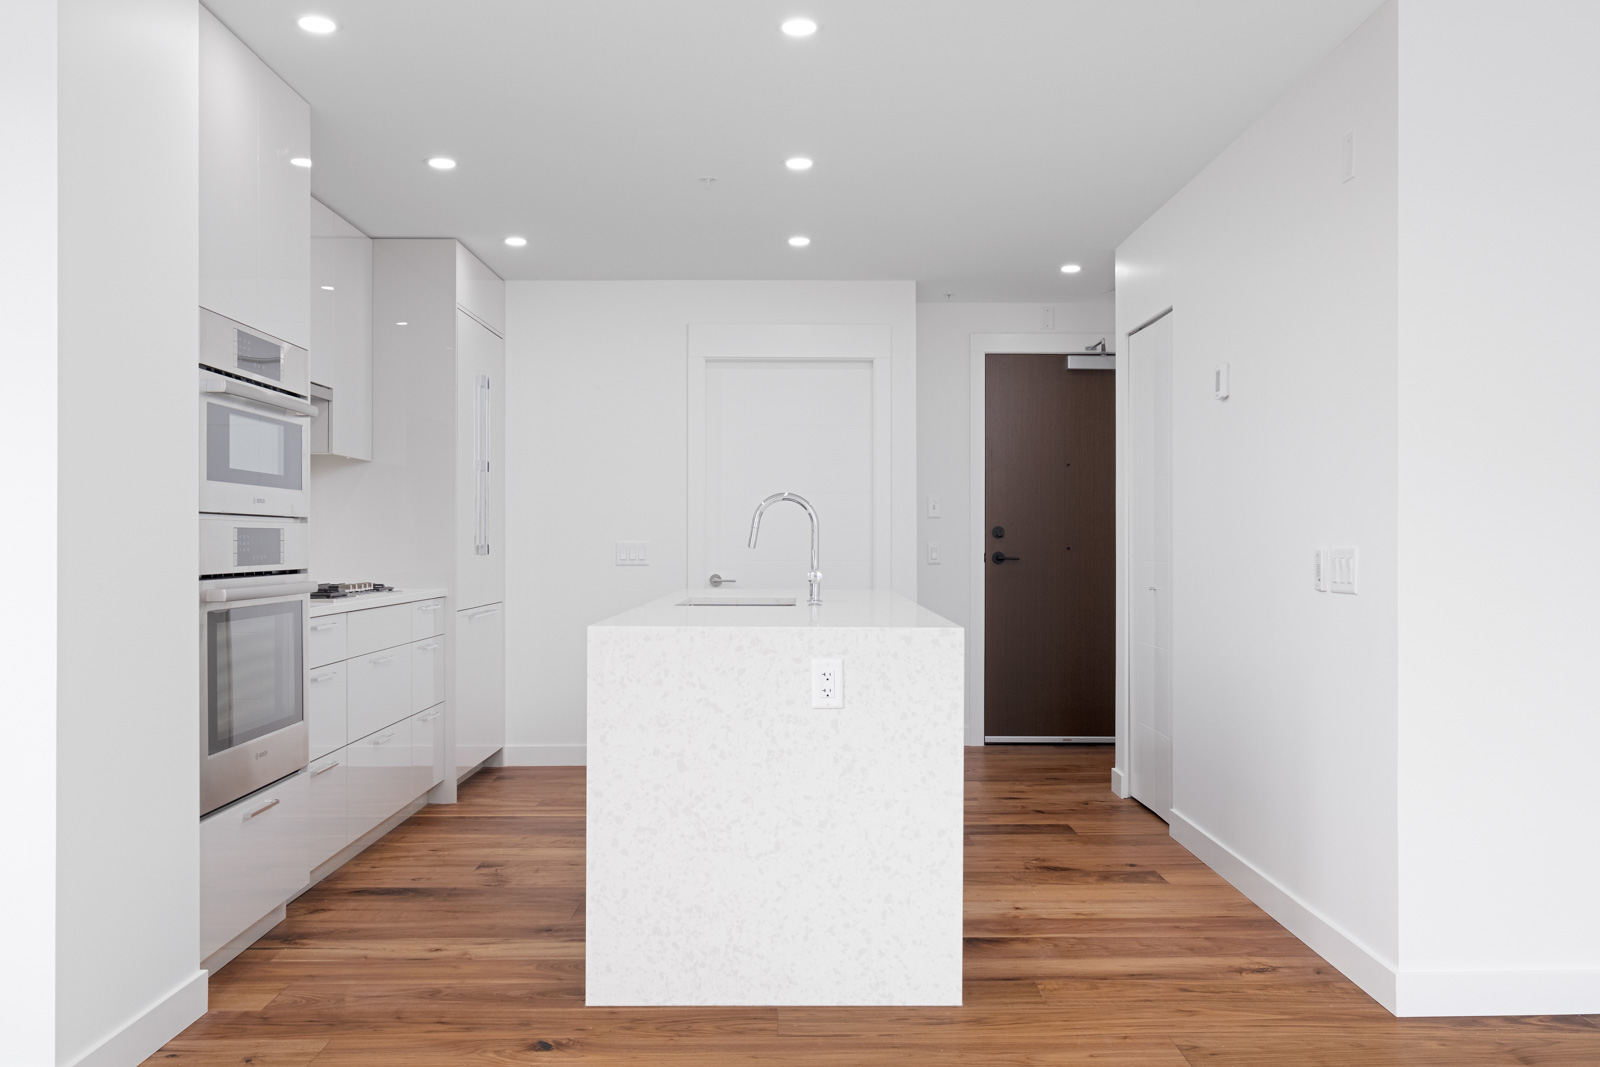 kitchen with island and white quartz countertop in rental condo apartment managed by bird nest properties in vancouver westside